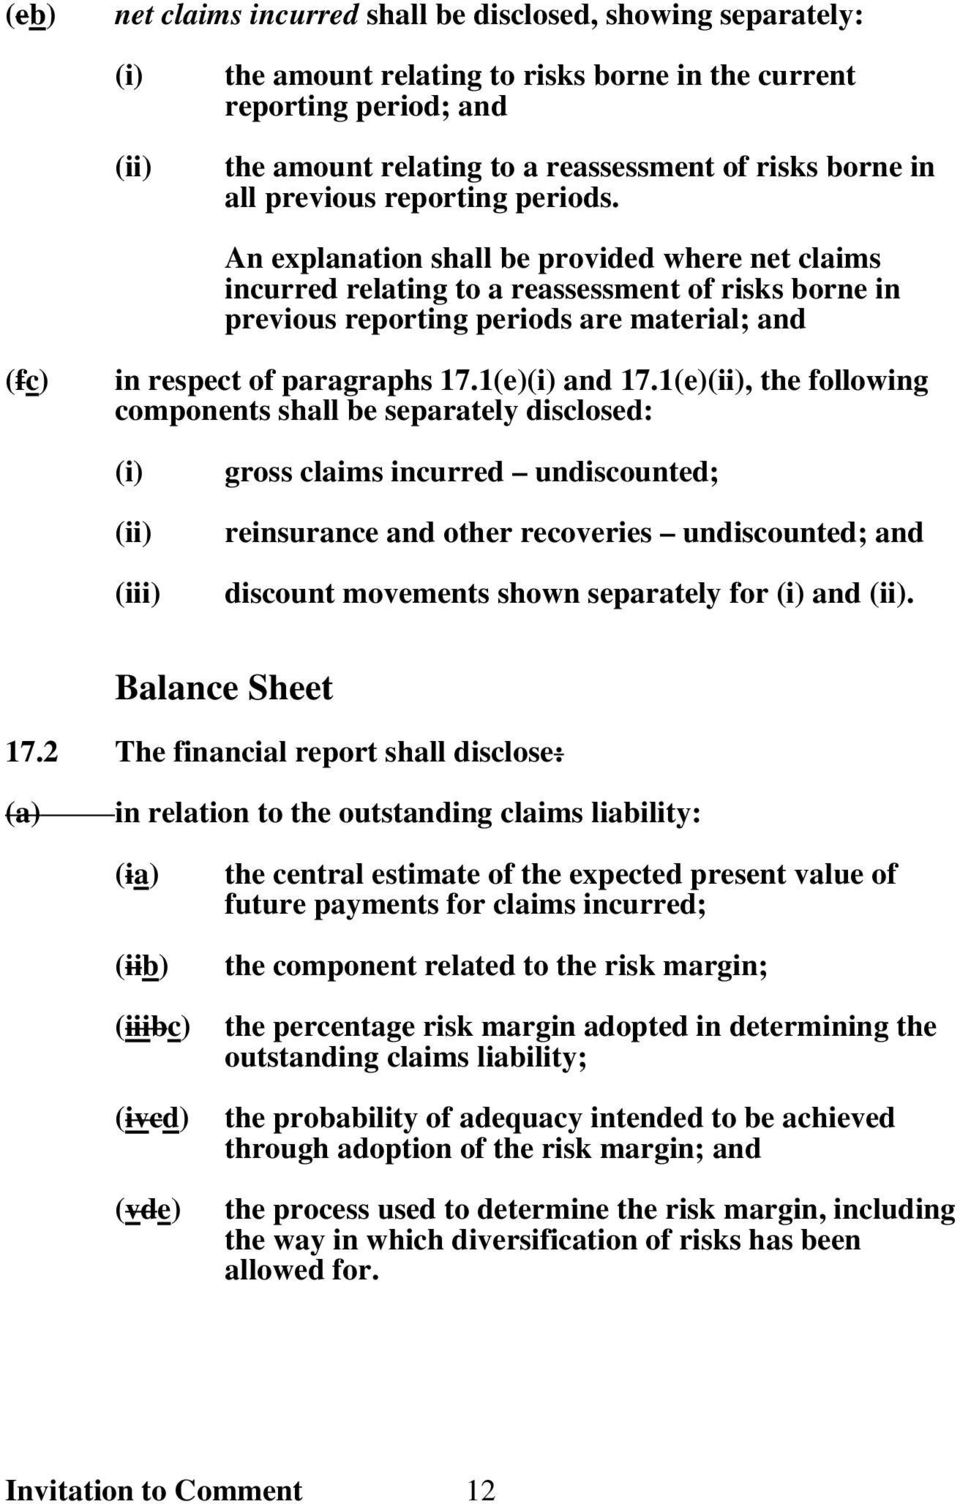 An explanation shall be provided where net claims incurred relating to a reassessment of risks borne in previous reporting periods are material; and (fc) in respect of paragraphs 17.1(e)(i) and 17.